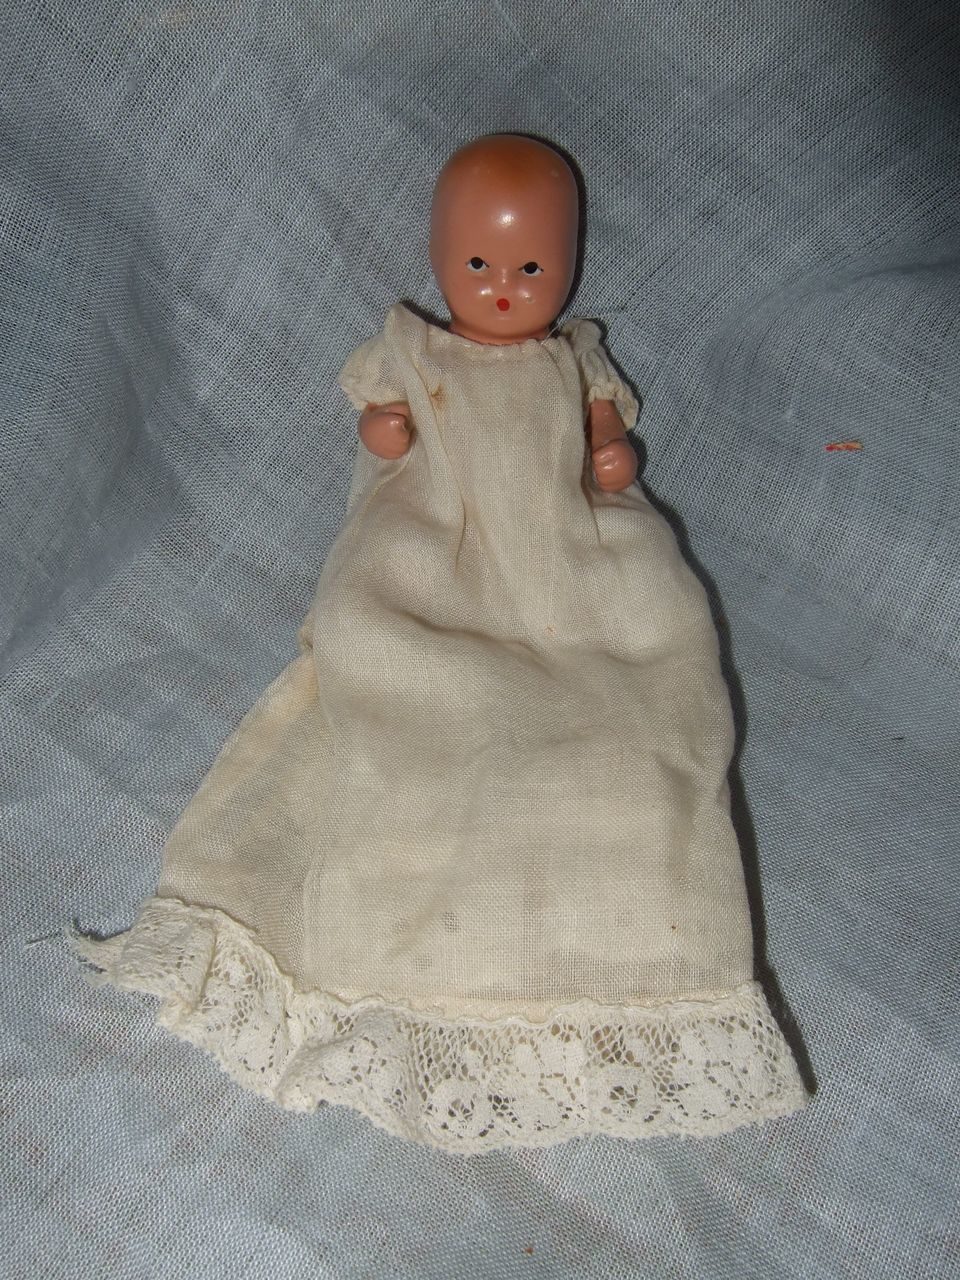 Painted bisque nancy ann storybook baby from shirleydoll on ruby lane